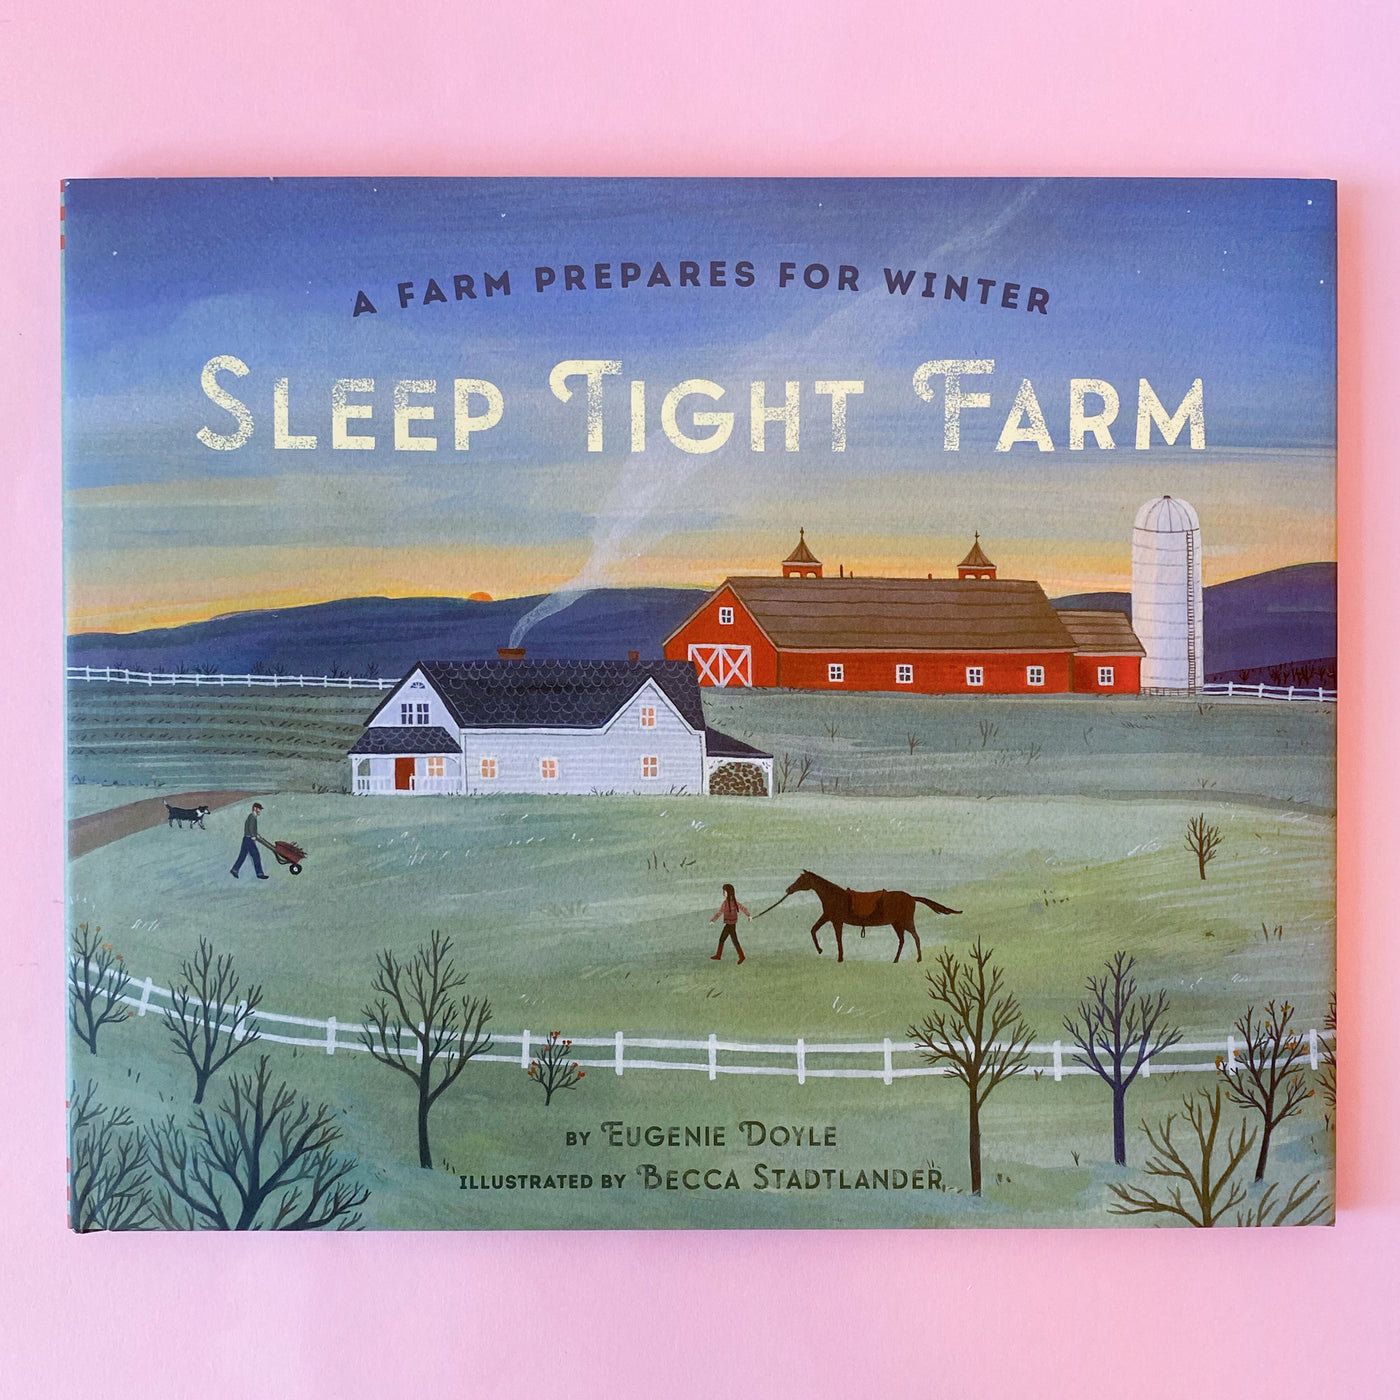 Sleep Tight Farm by Eugenie Doyle and Becca Stadtlander